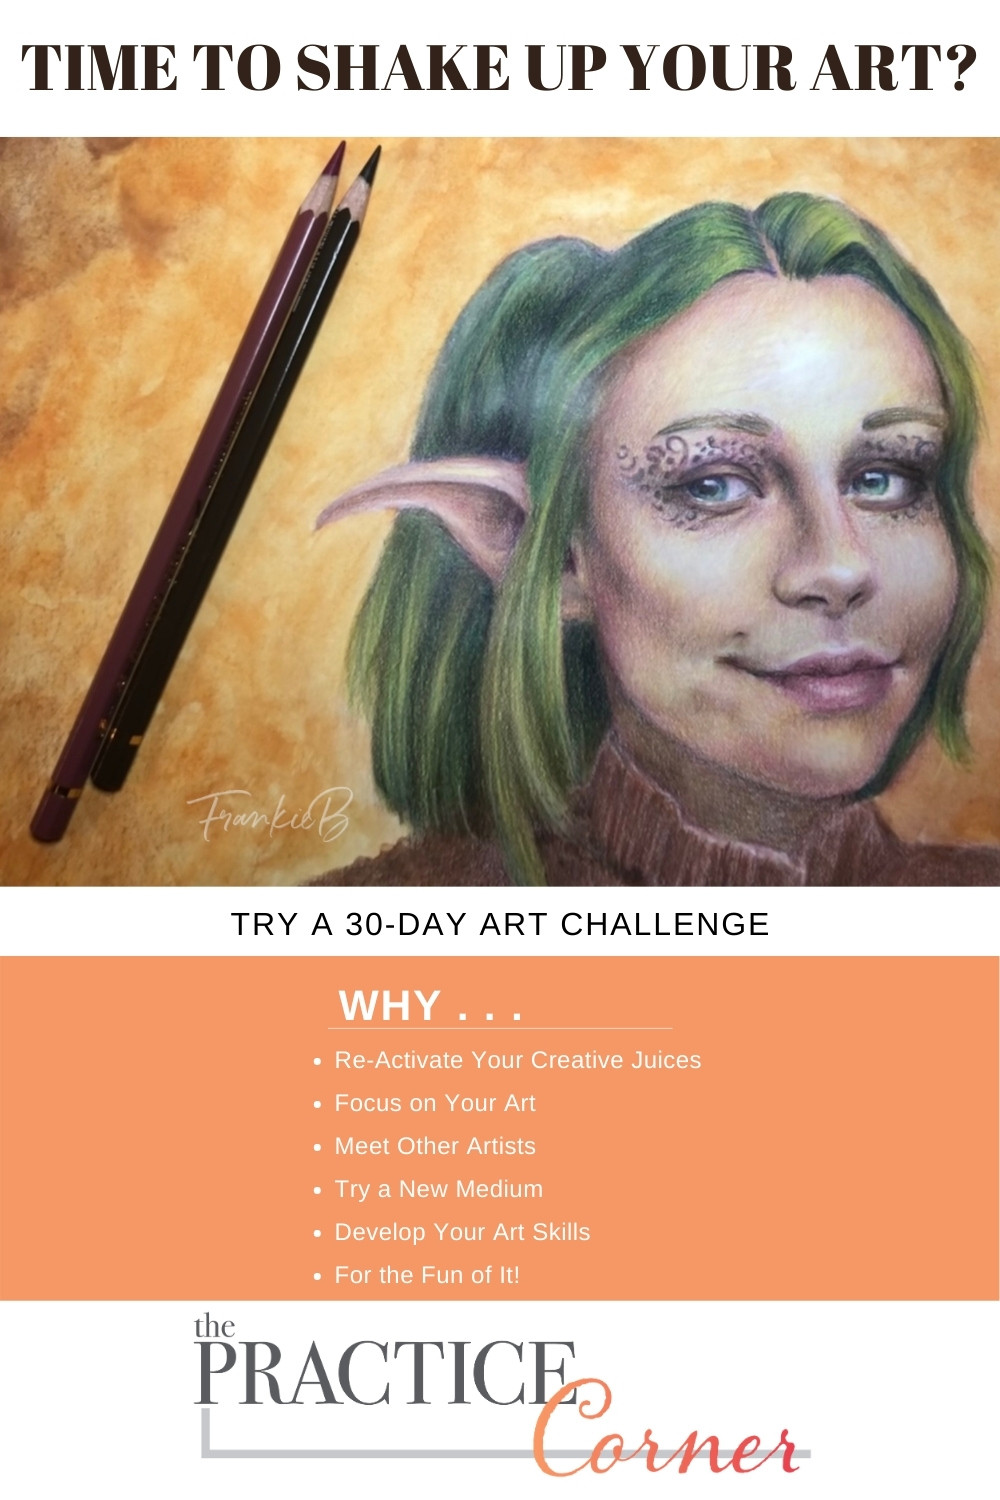 Need to shake up your coloring skills?  Try a 30-Day Art Challenge | The Practice Corner | #realisticcoloring #coloringtechniques #coloredpencilpractice